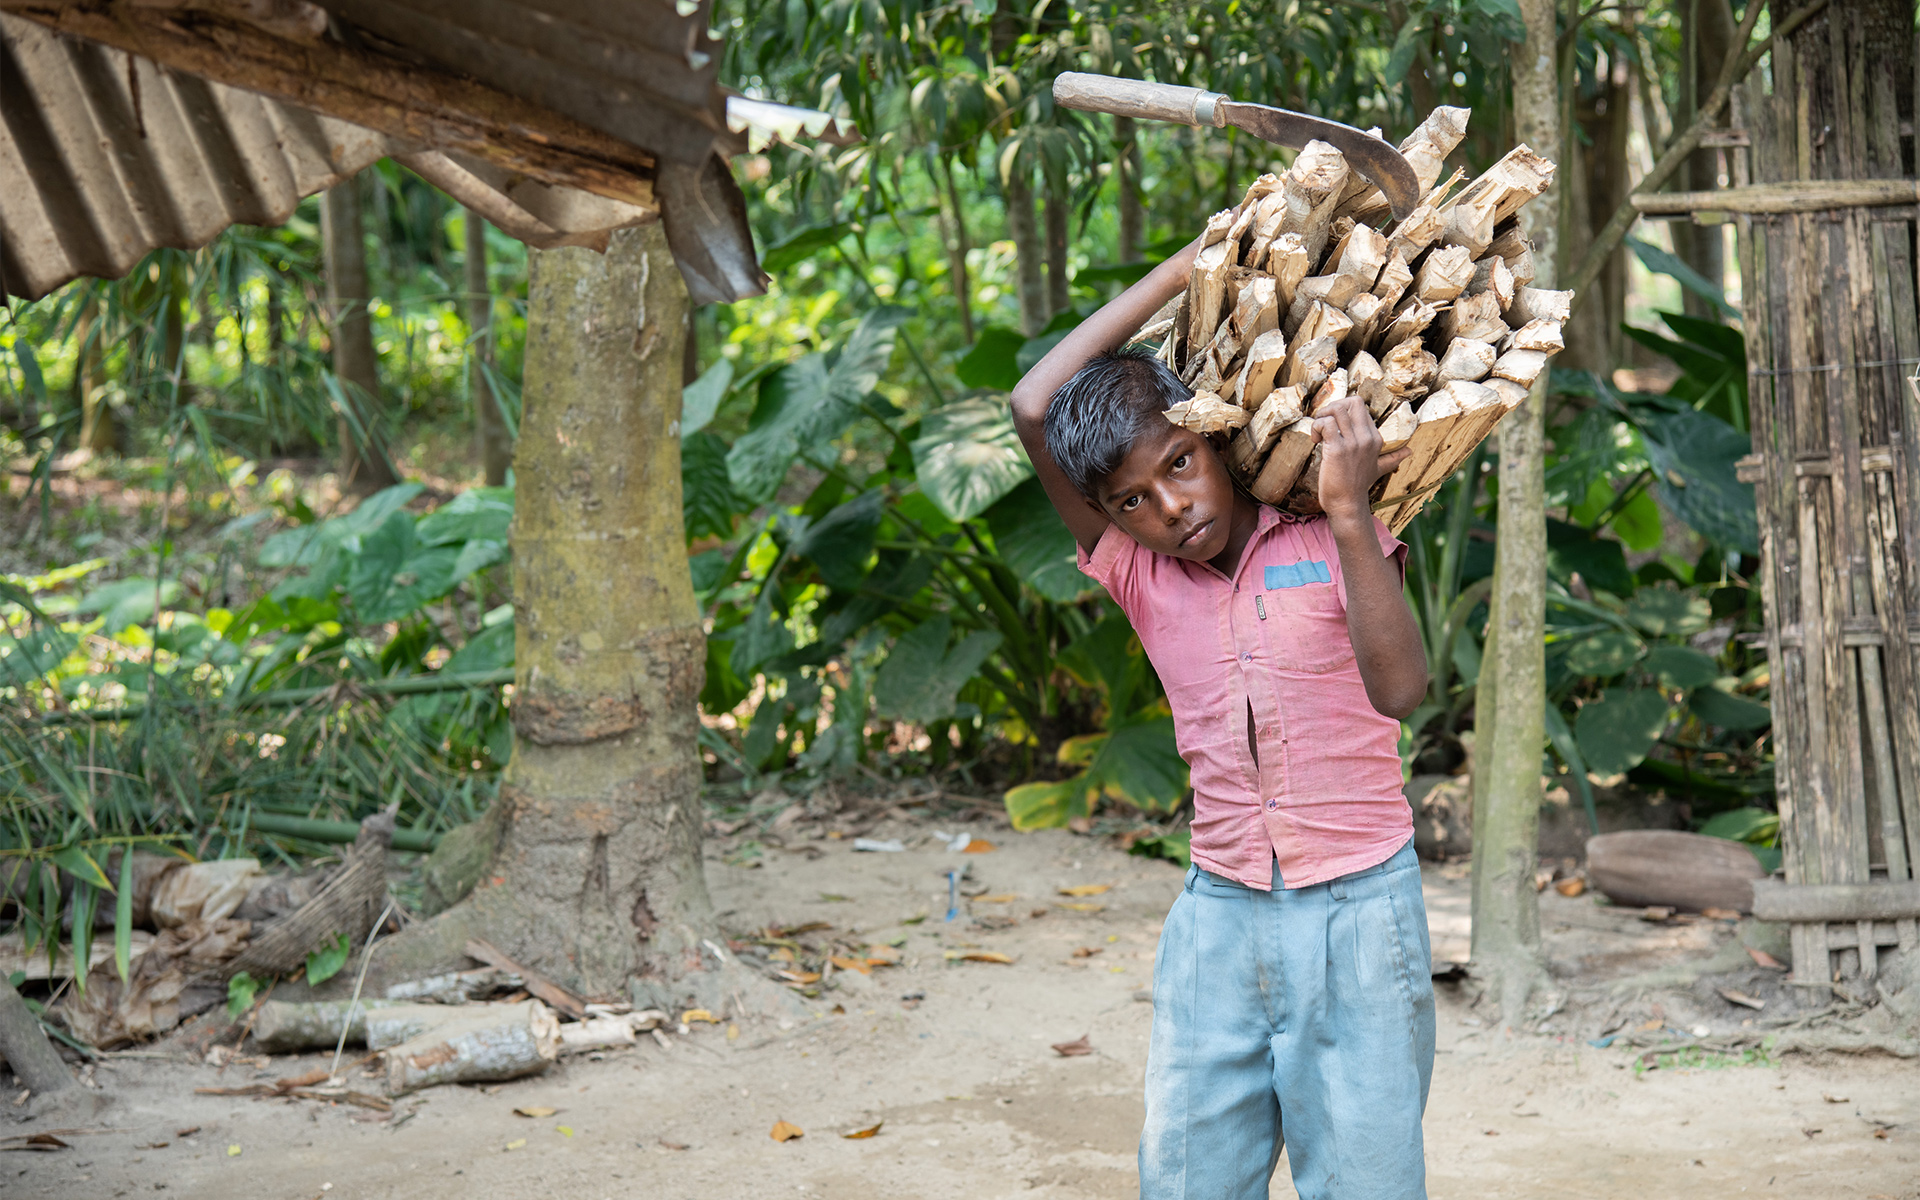 Sujit carries a load of wood